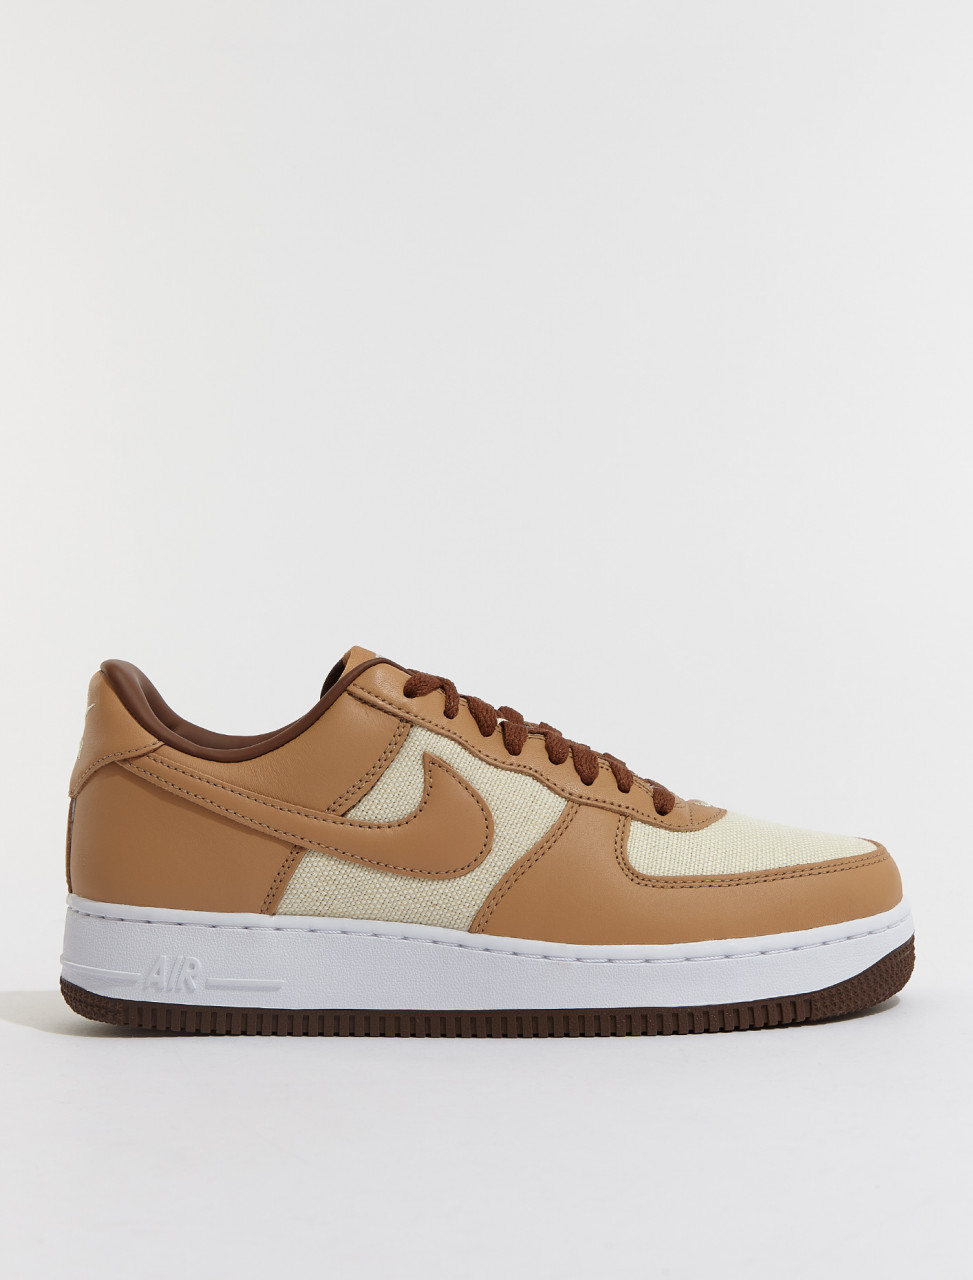 DJ6395-100 NIKE AIR FORCE 1 QS NATURAL UNDERBRUSH ACORN